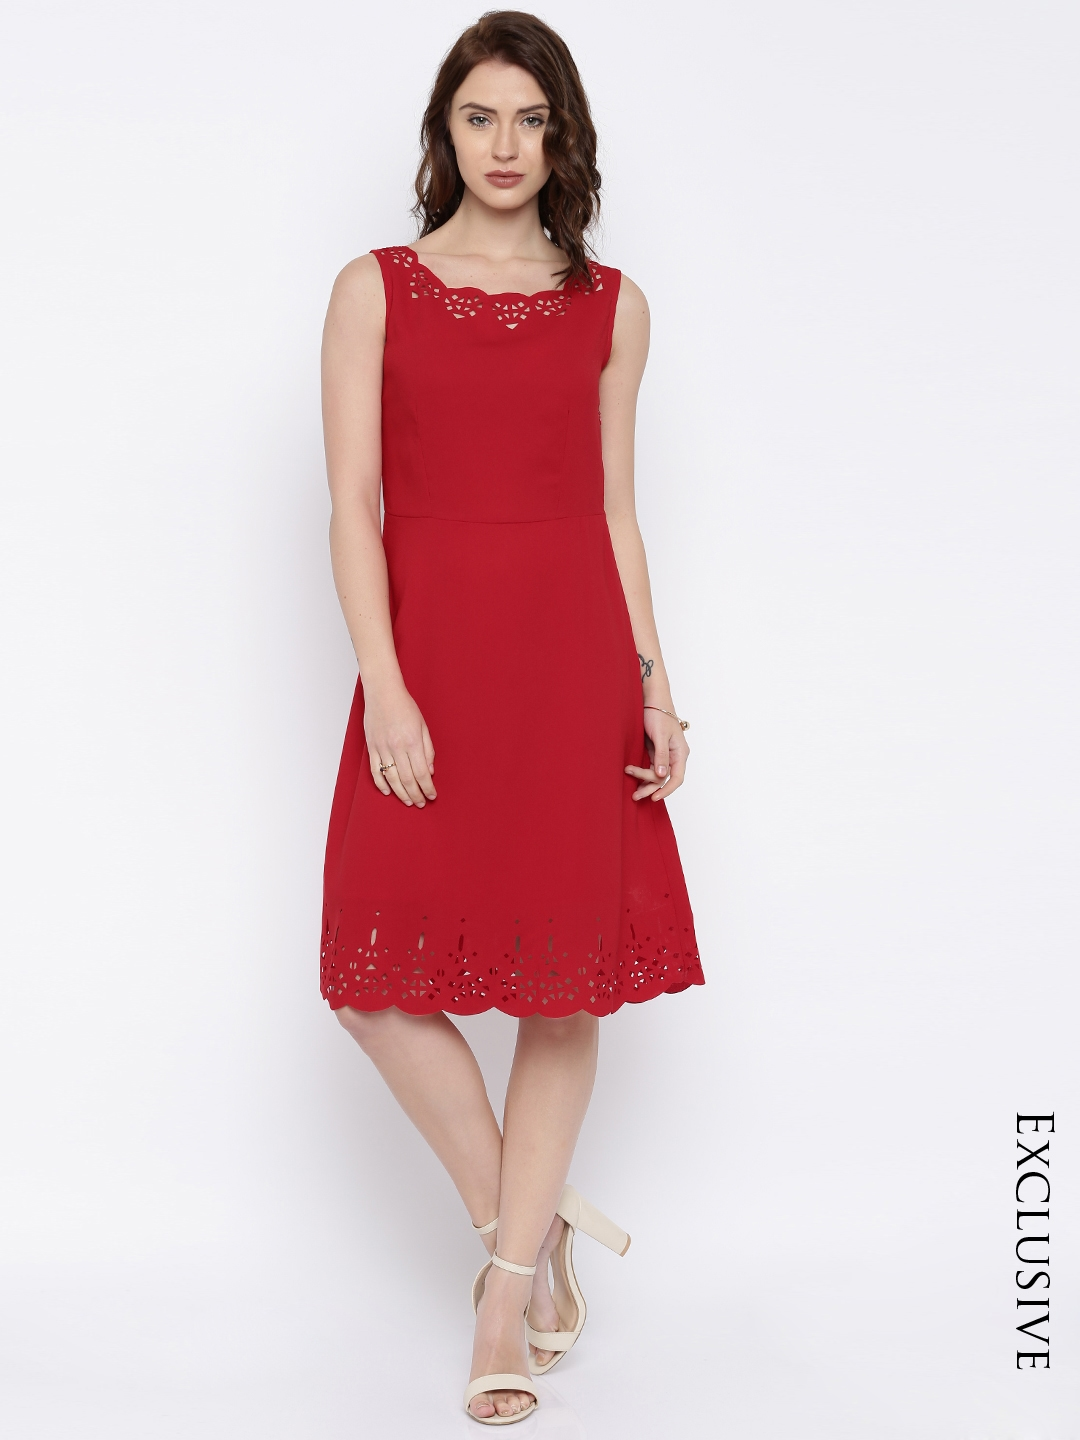 Knee Length Dress - Buy Knee Length Dresses Online in India